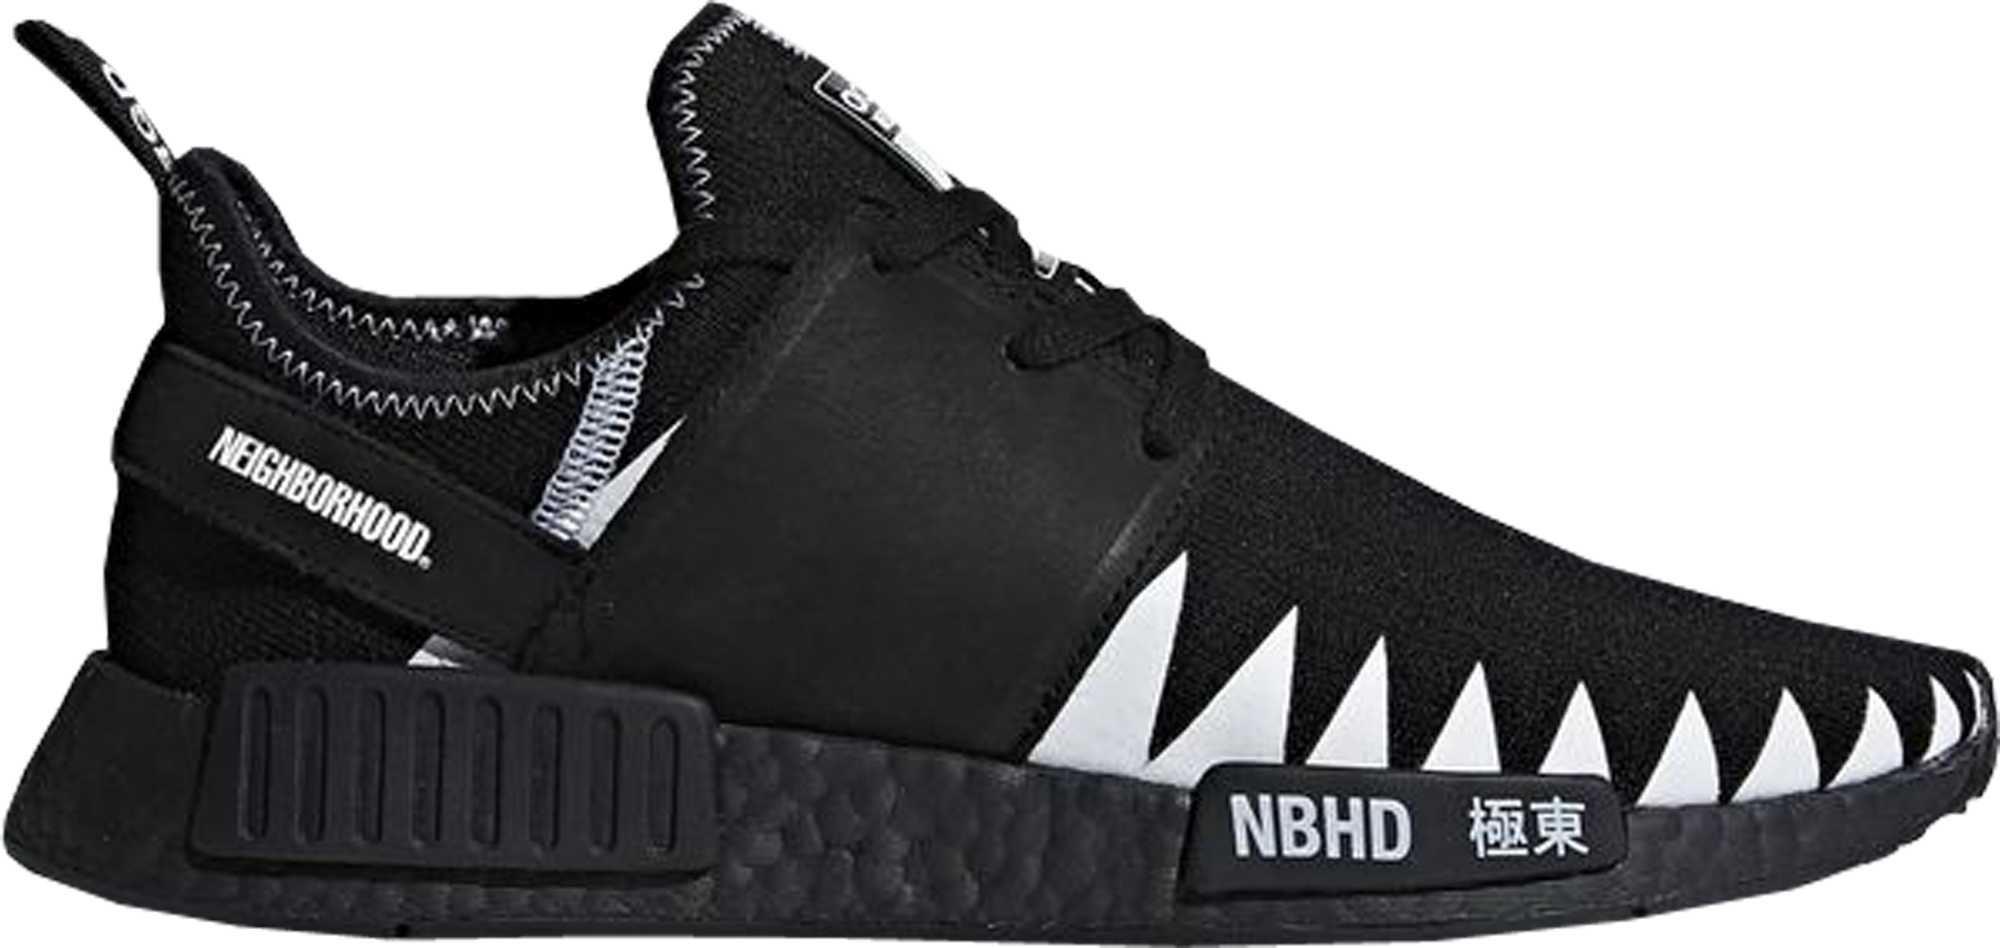 2ca0805b80f45 coupon code for adidas nmd runner xr1 core black yeezy 5d7a6 89f15